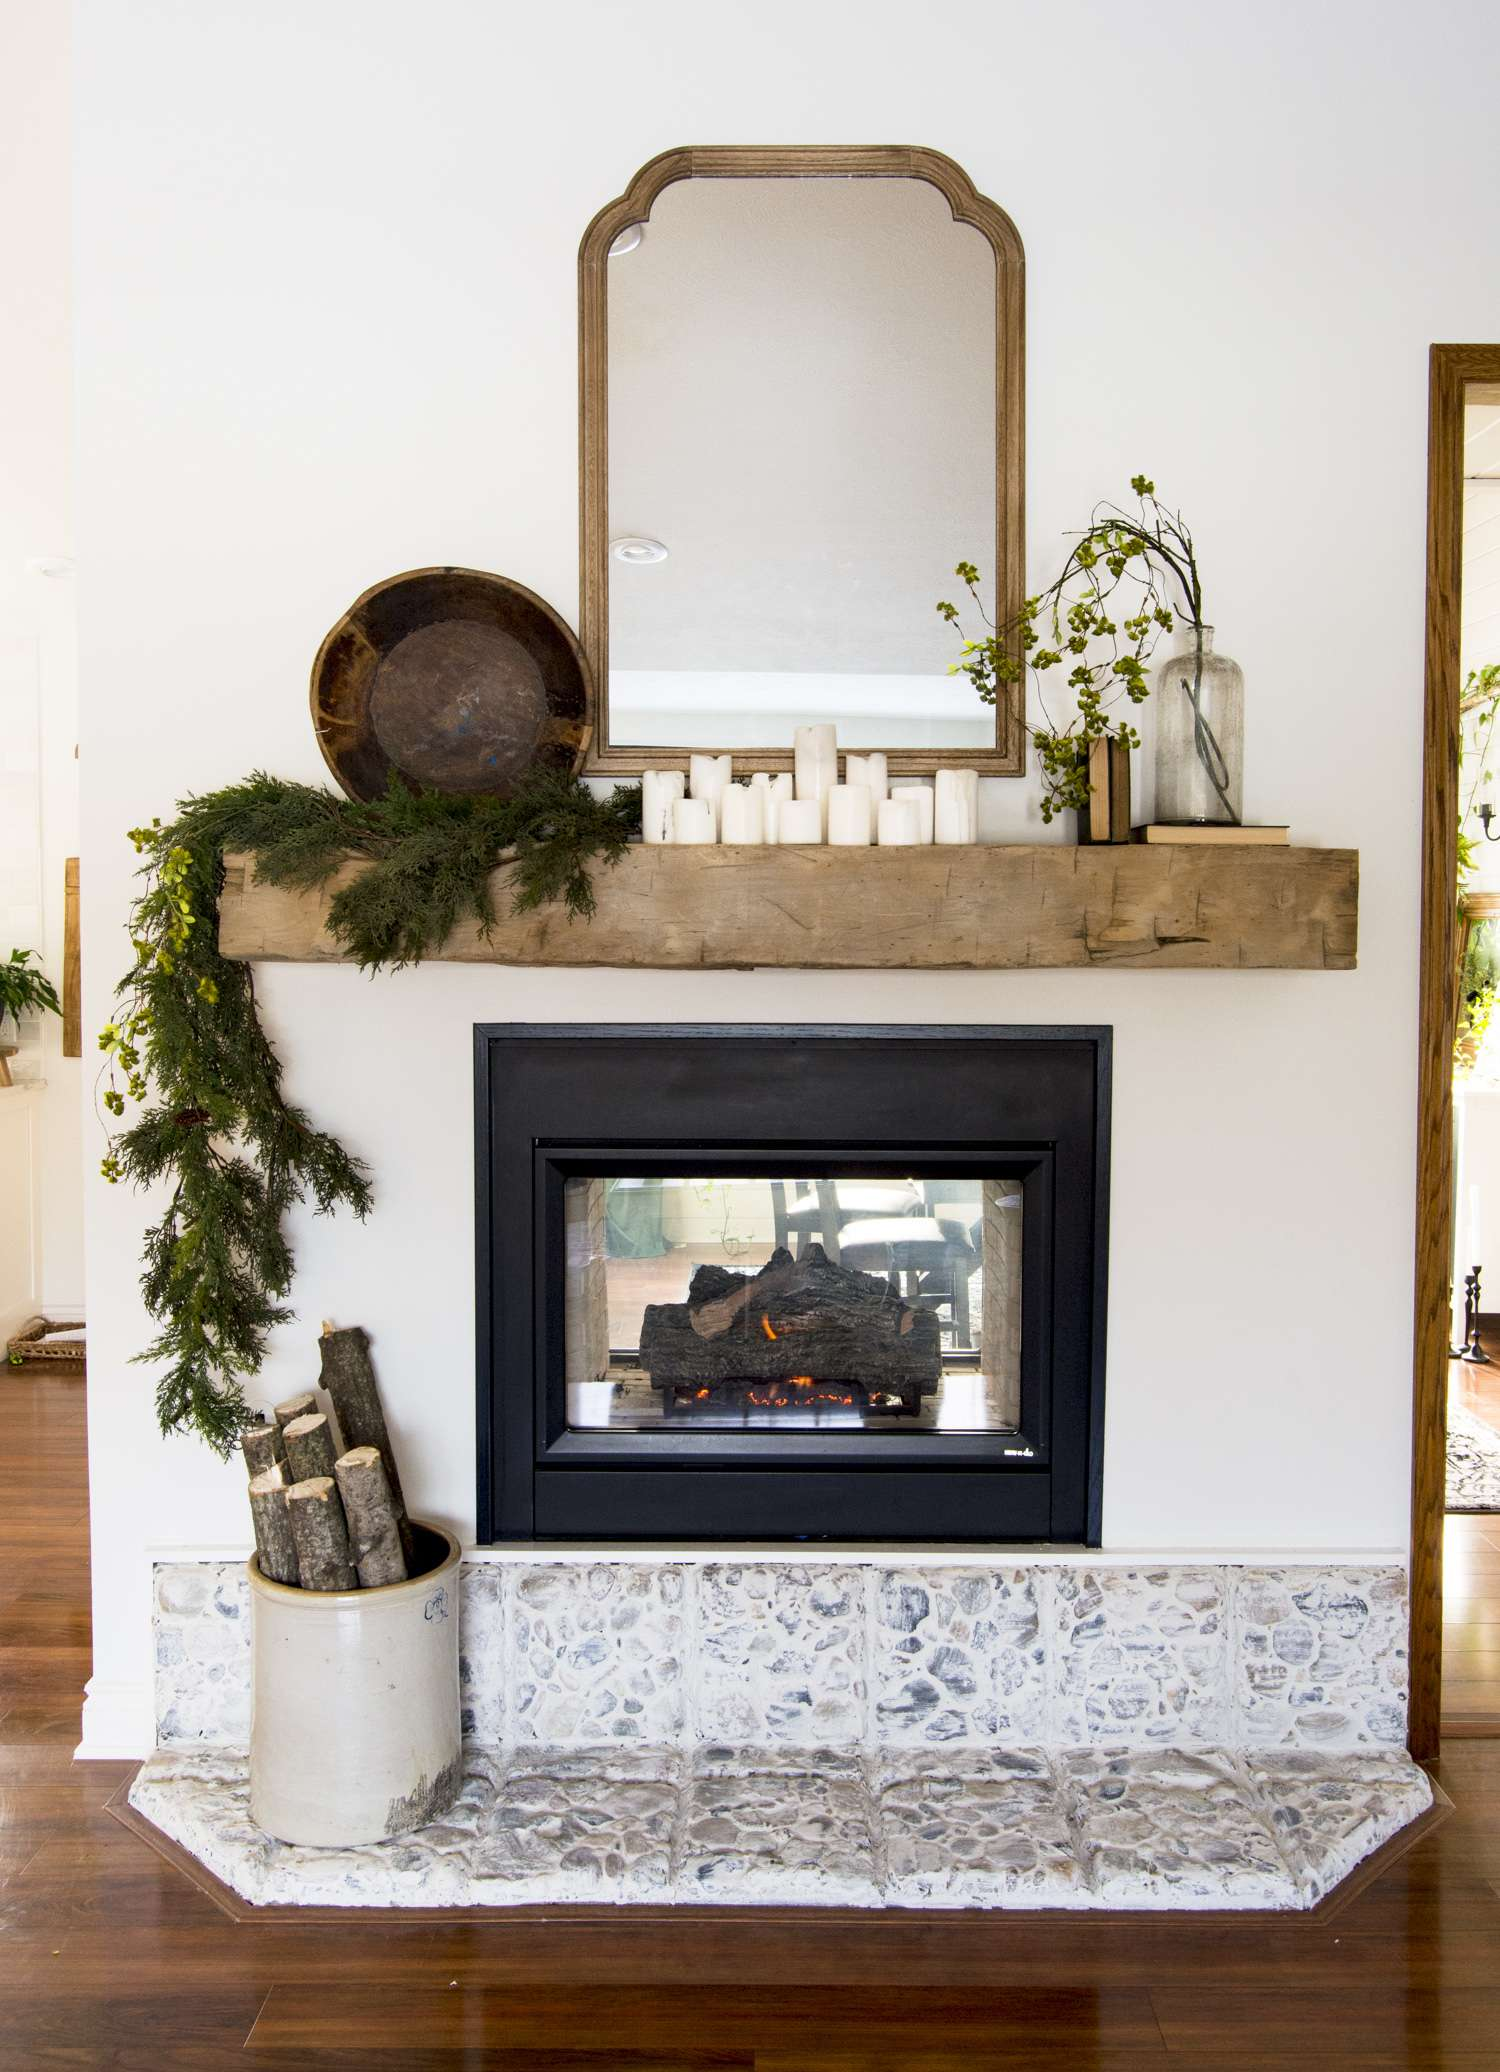 Modern rustic mantel decor ideas.